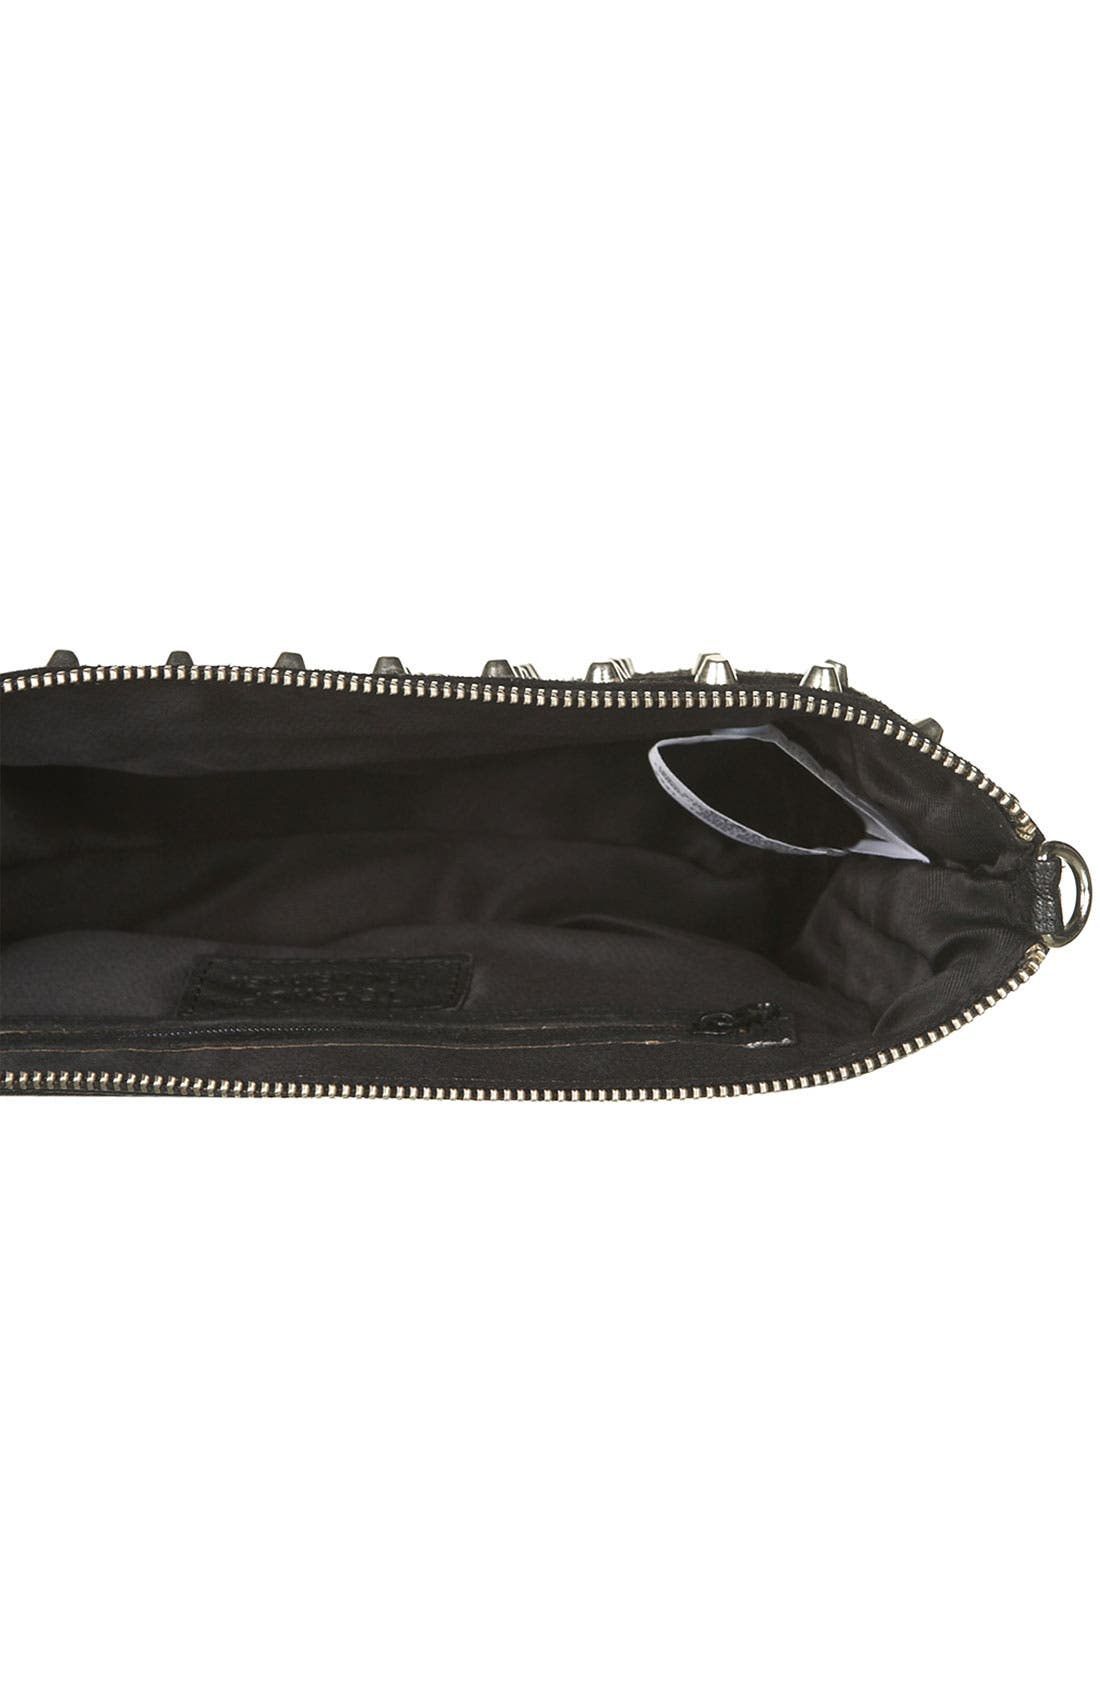 Alternate Image 3  - Topshop Studded Suede Clutch